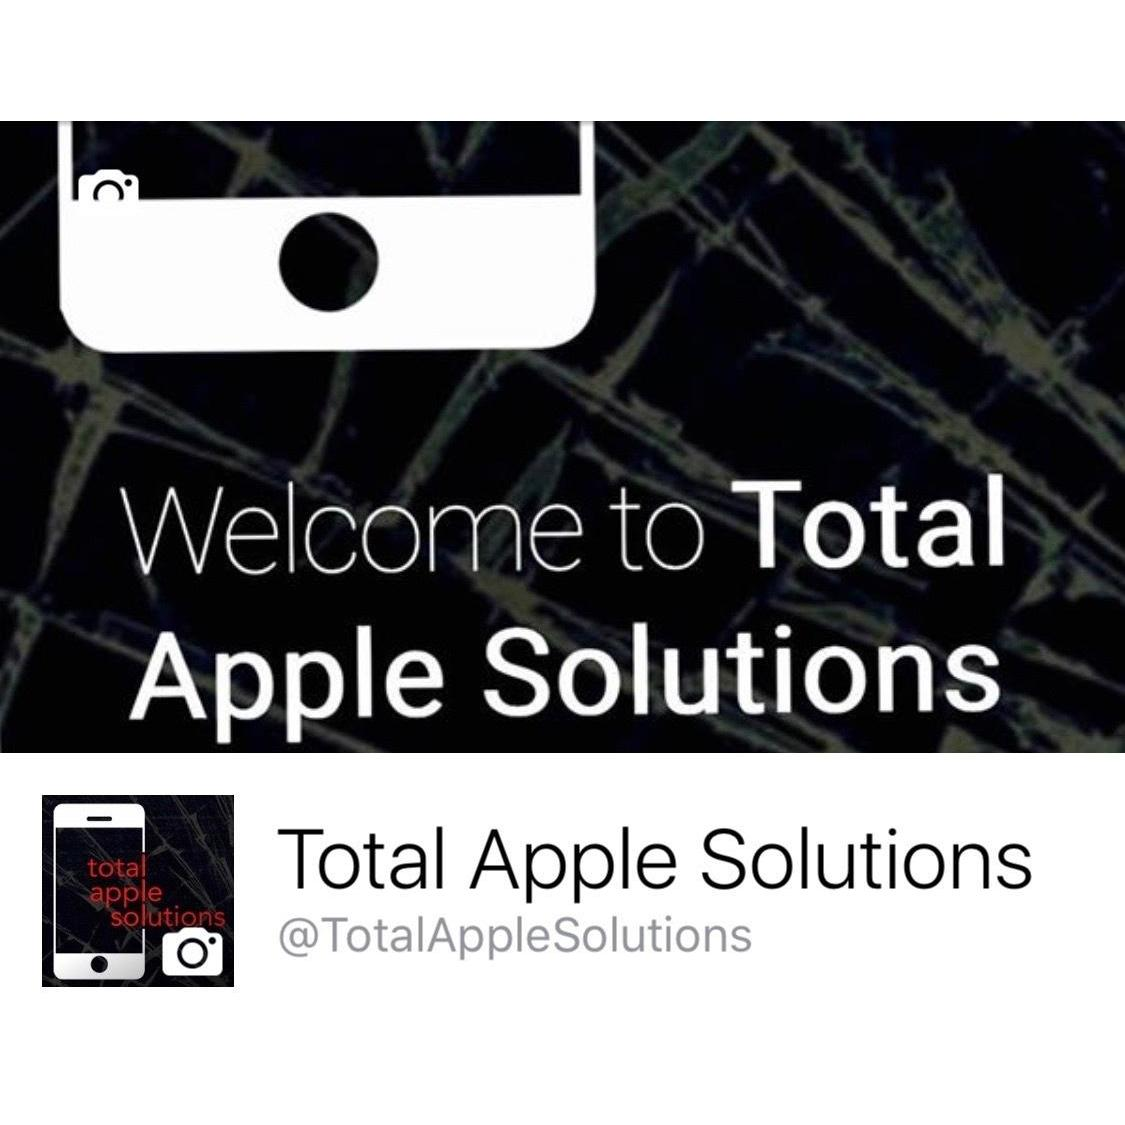 Total Apple Solutions